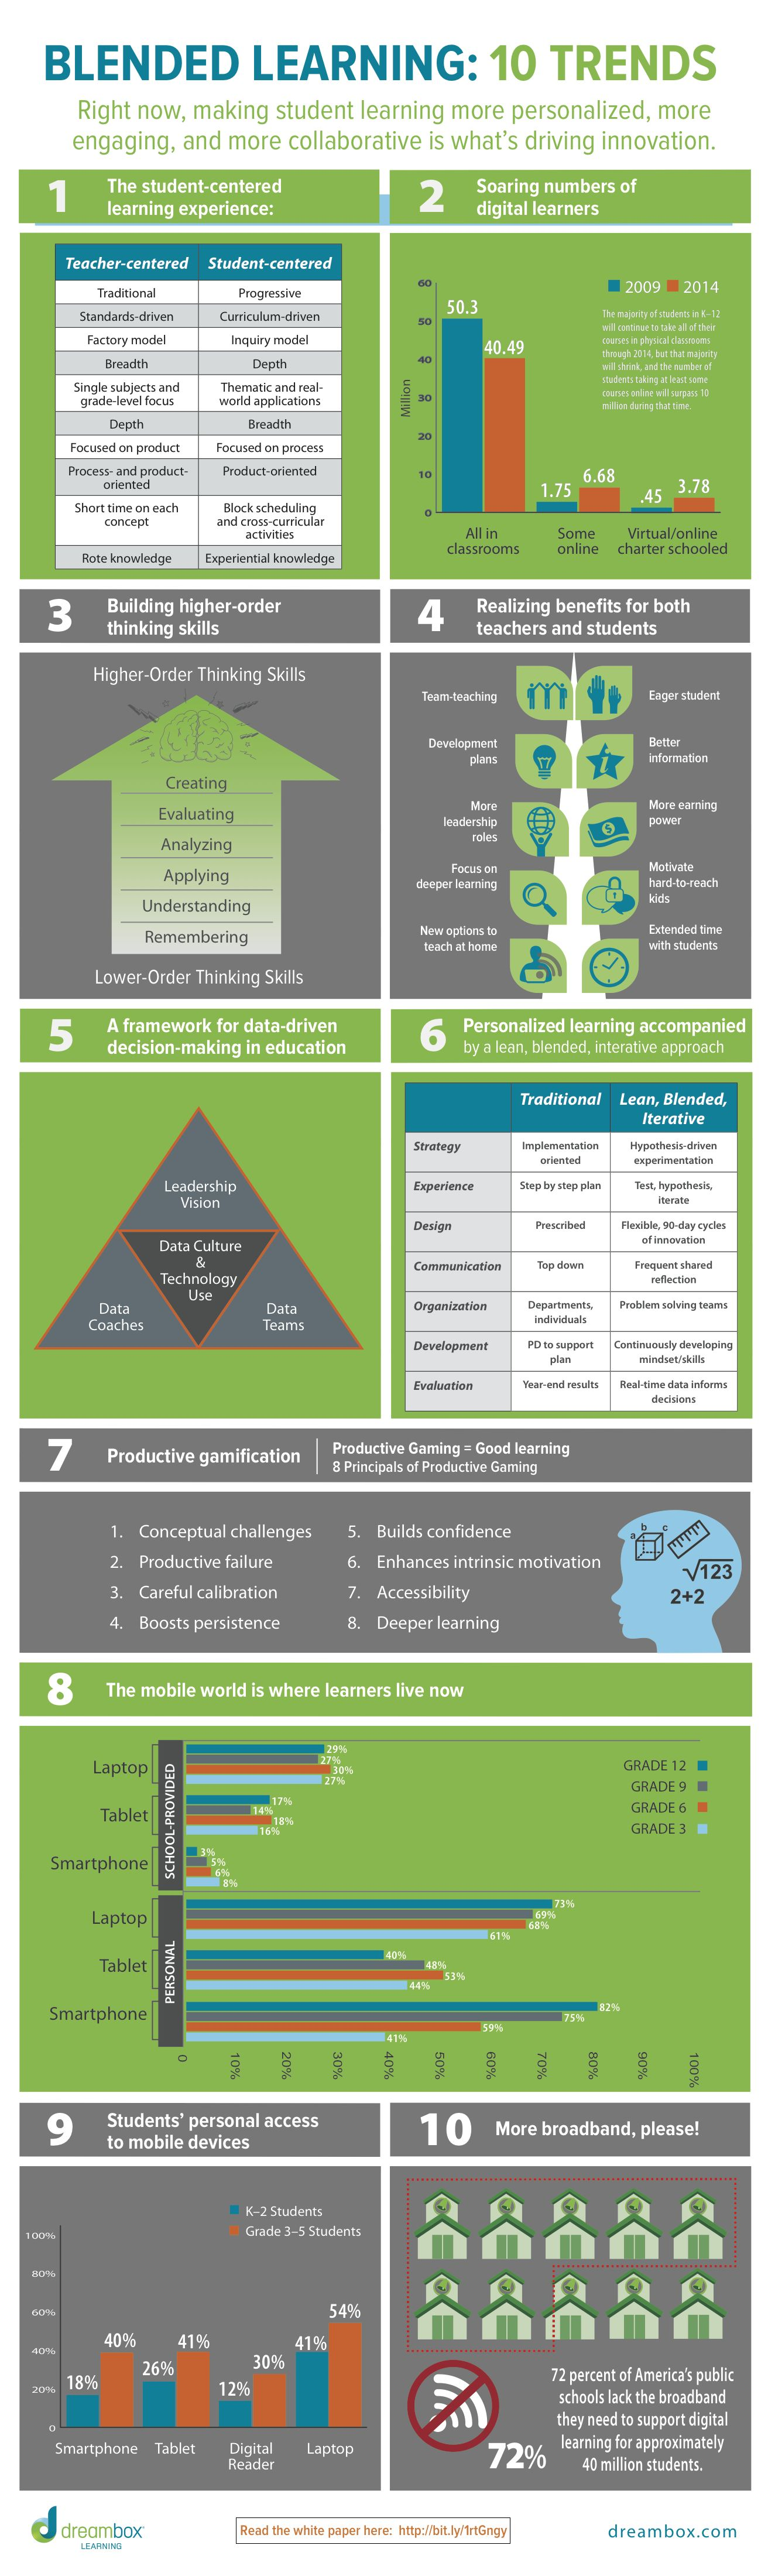 "A new infographic, released by DreamBox Learning, ""Blended Learning: 10 Trends,"" gives a snapshot on how right now, making student learning is more personalized, more engaging, and more collaborative is what's driving innovation."